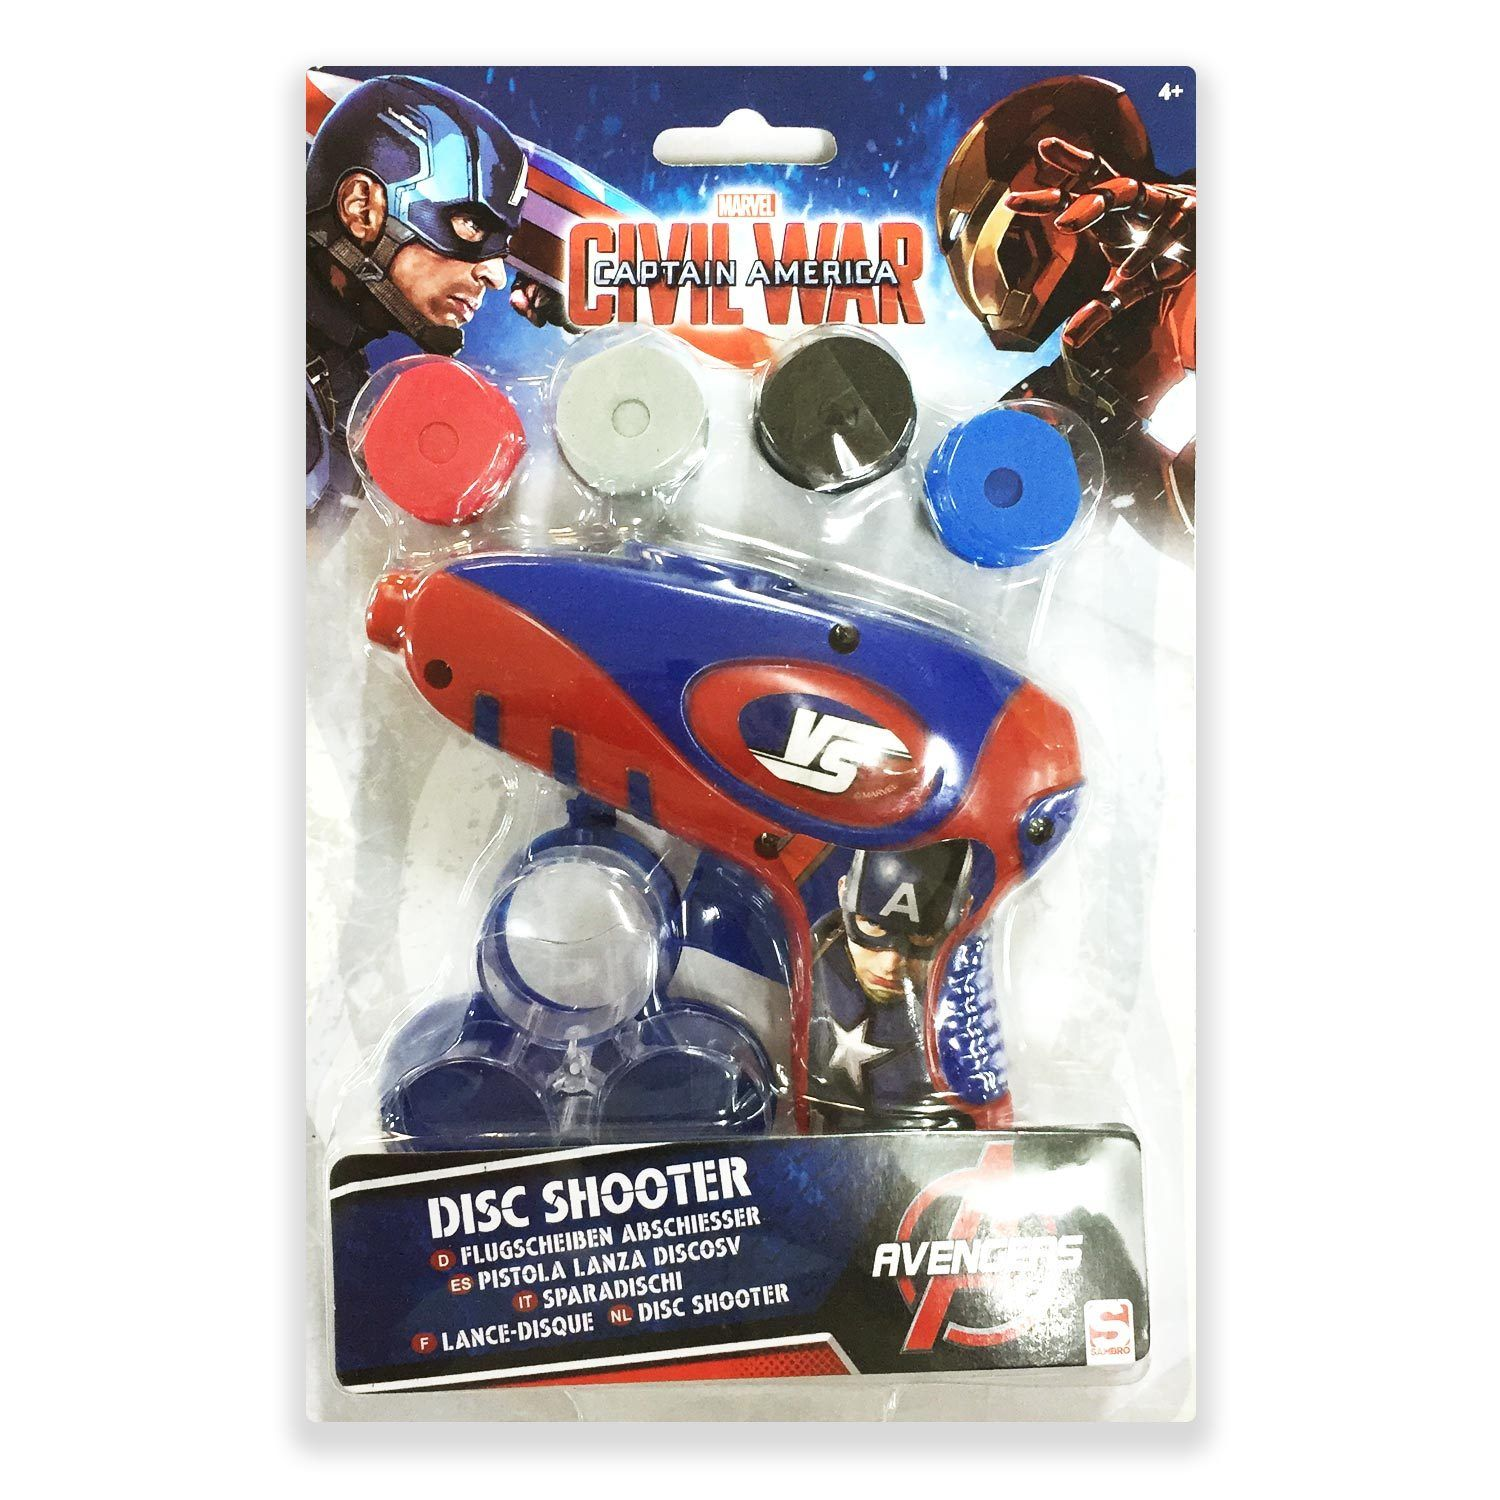 Captain America Civil War Shooter